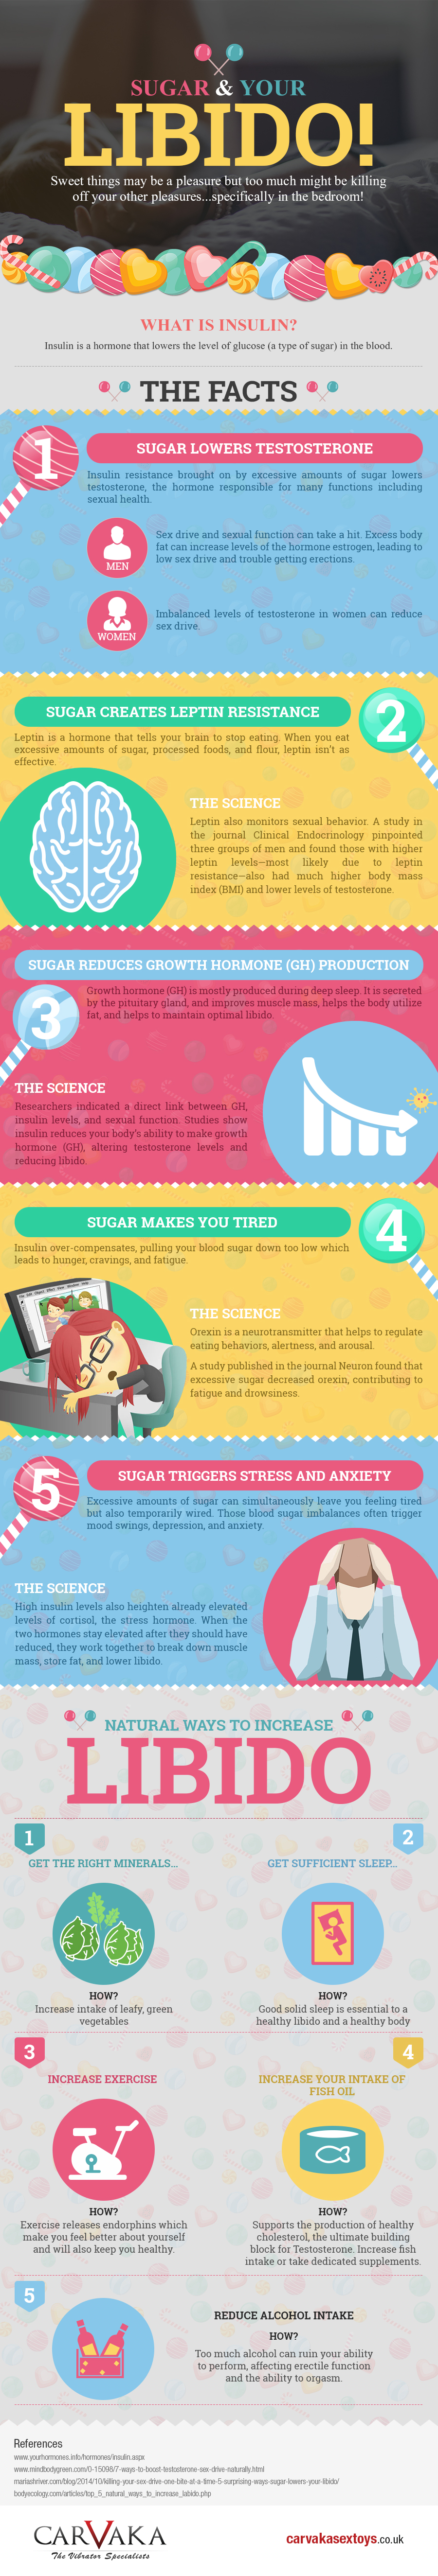 Sugar-and Libido- infographic